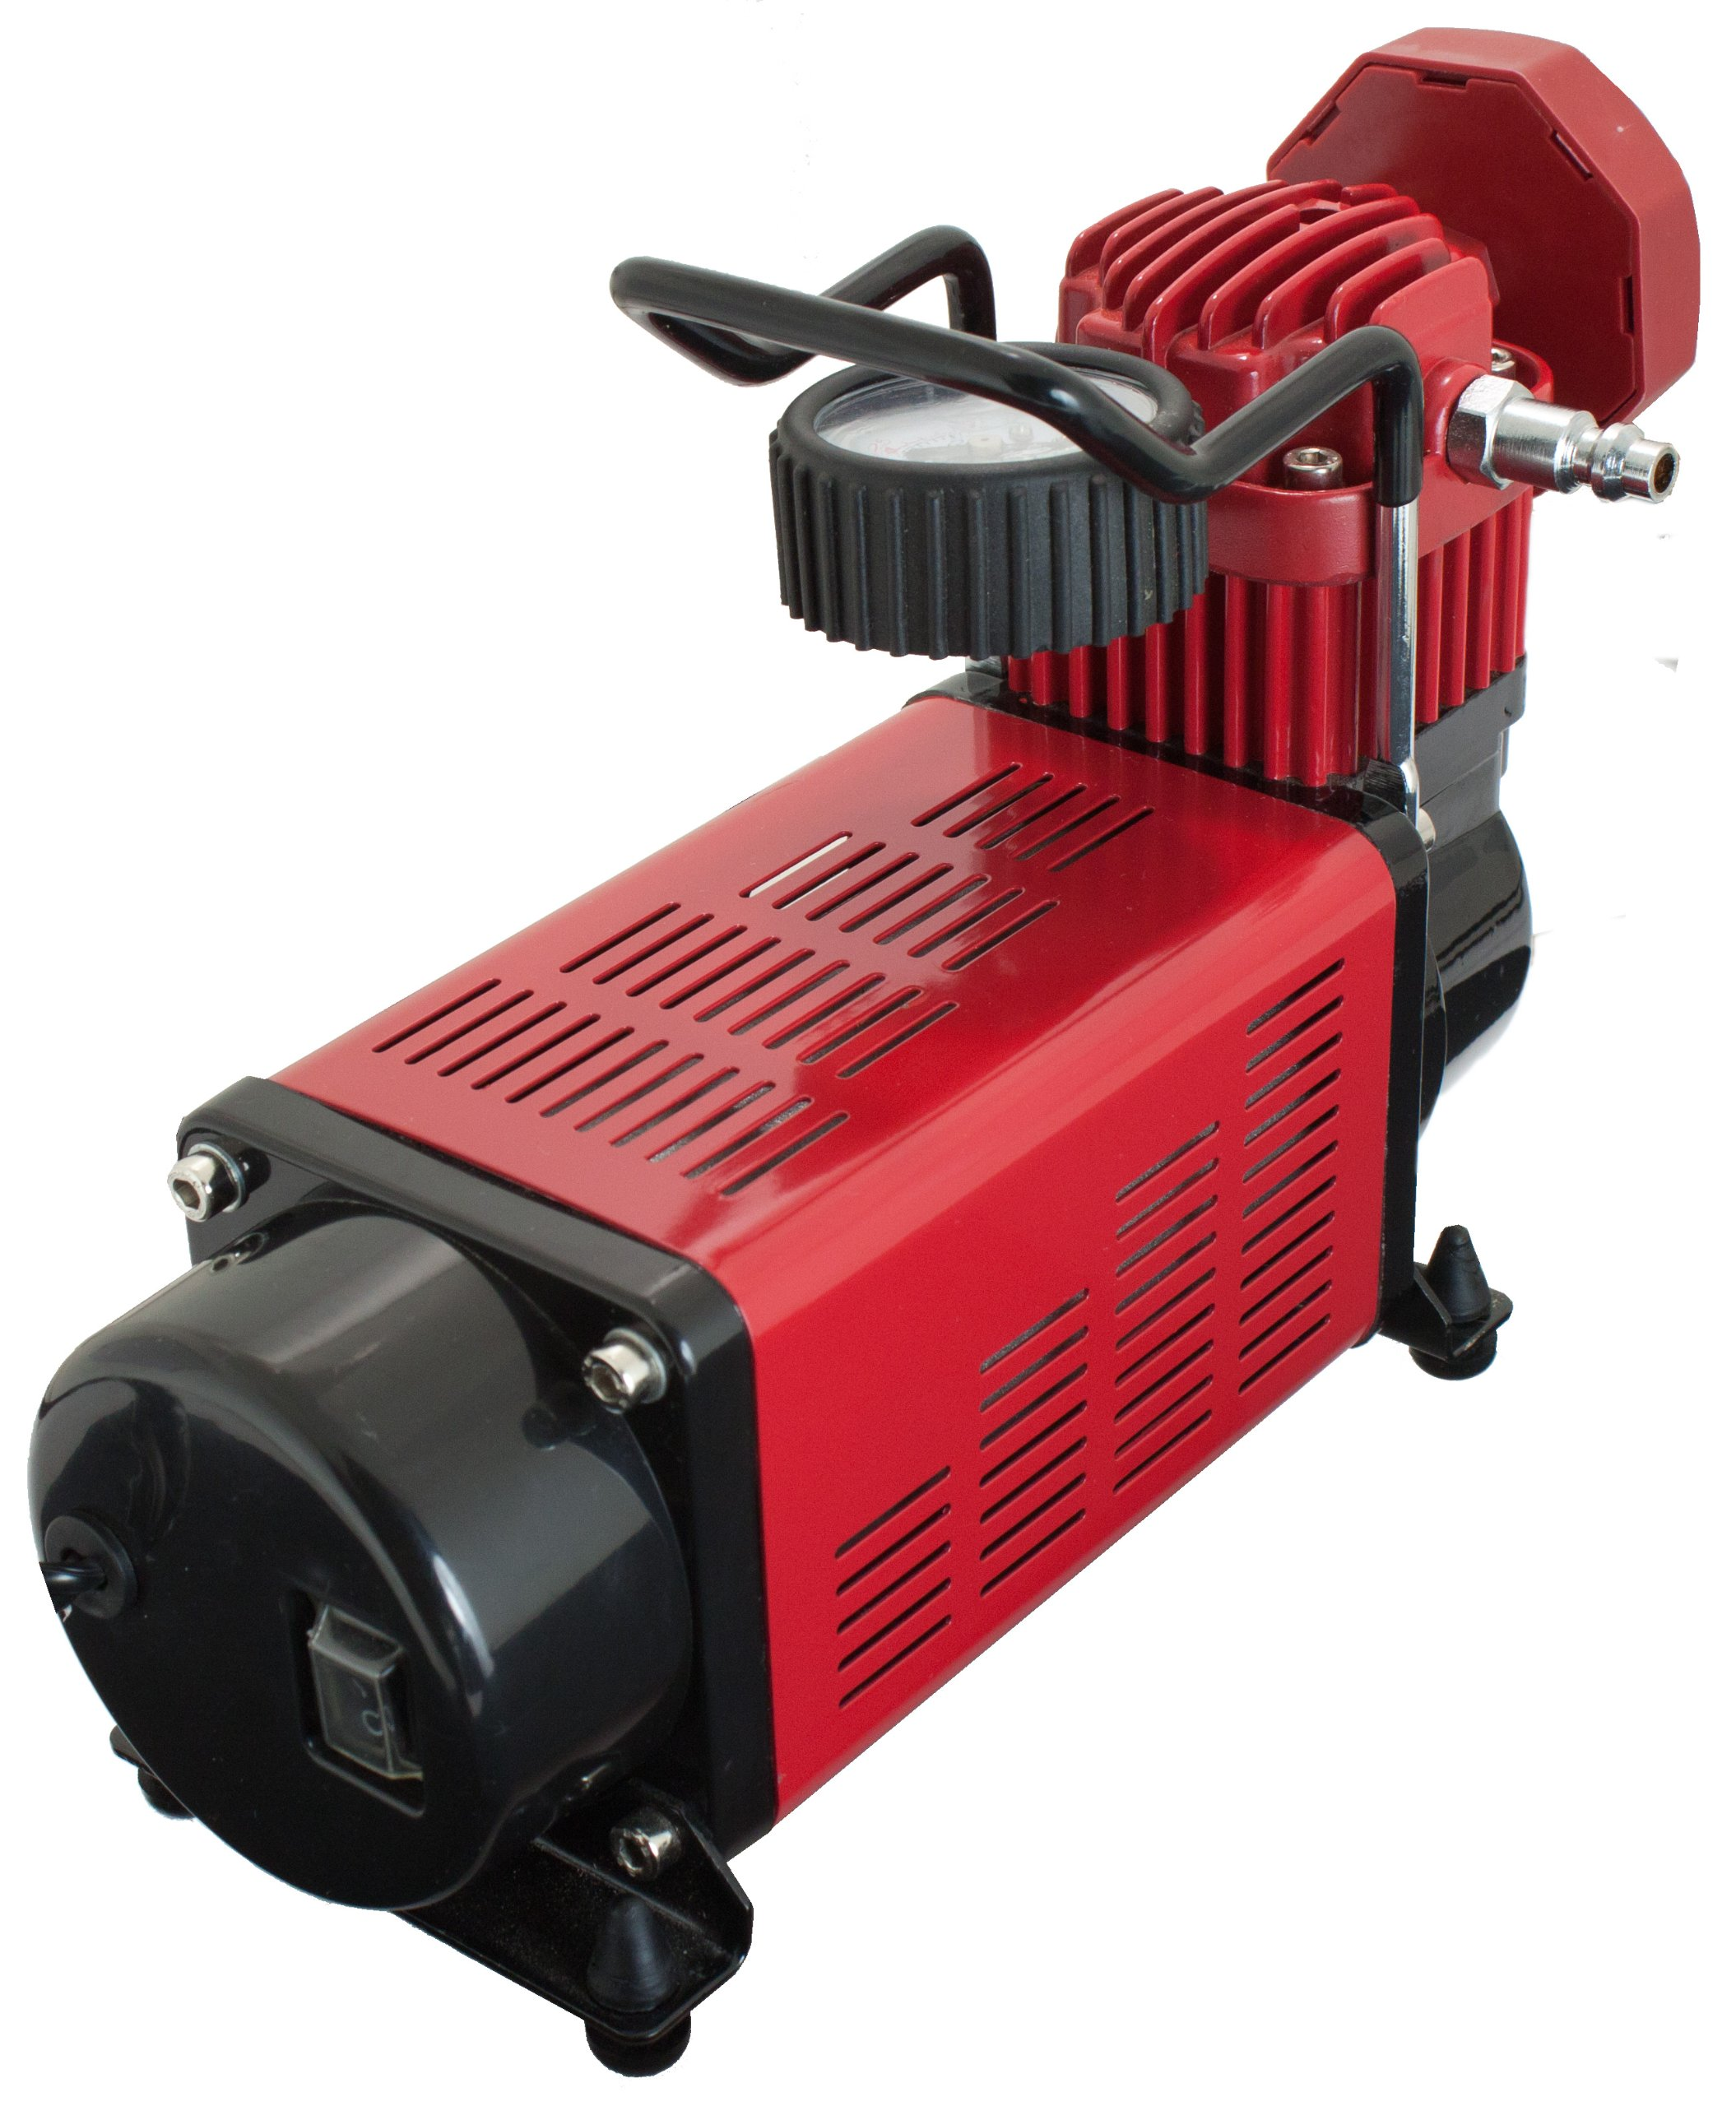 Q Industries 12 Volt Air Compressor, Portable Air Pump, 12 volt, Tire Inflator, MV-50 Air Compressor by SuperFlow for inflating full size 4 x 4, Jeep, truck, SUV and RV Tires by Q Industries (Image #6)